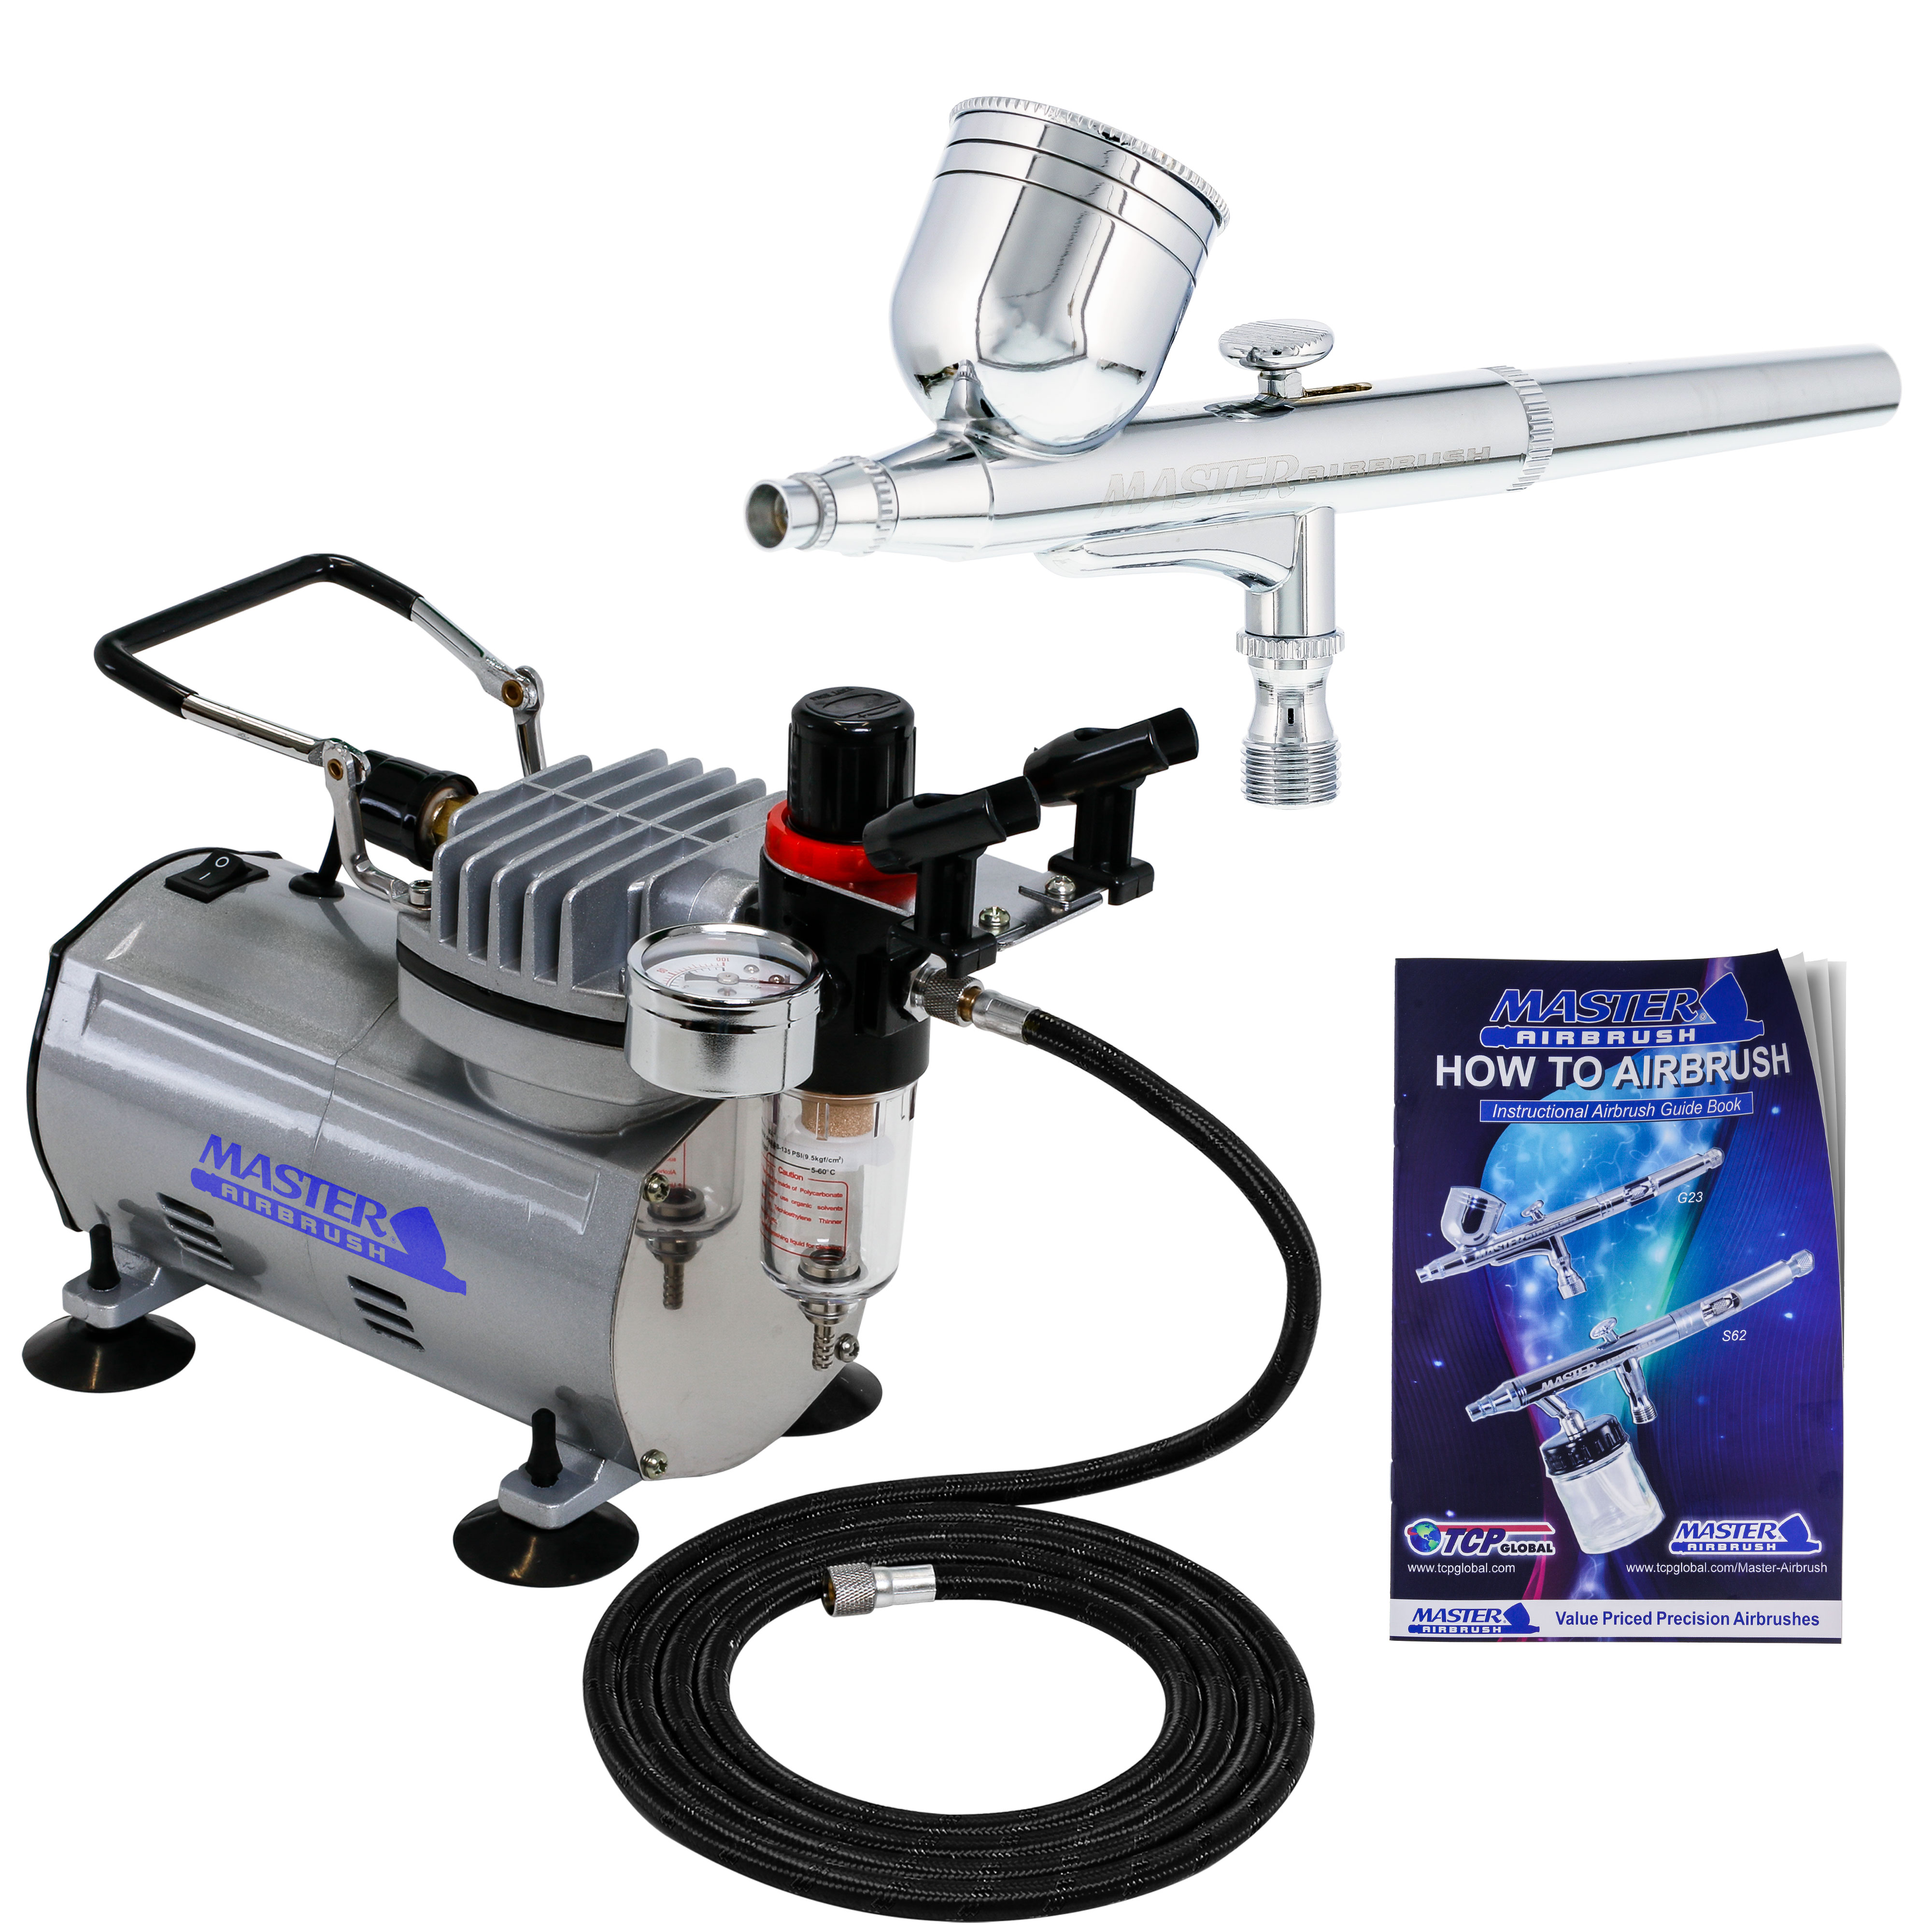 Details About Gravity Dual Action Airbrush Kit Set Air Compressor Spray Auto Paint Hobby Craft